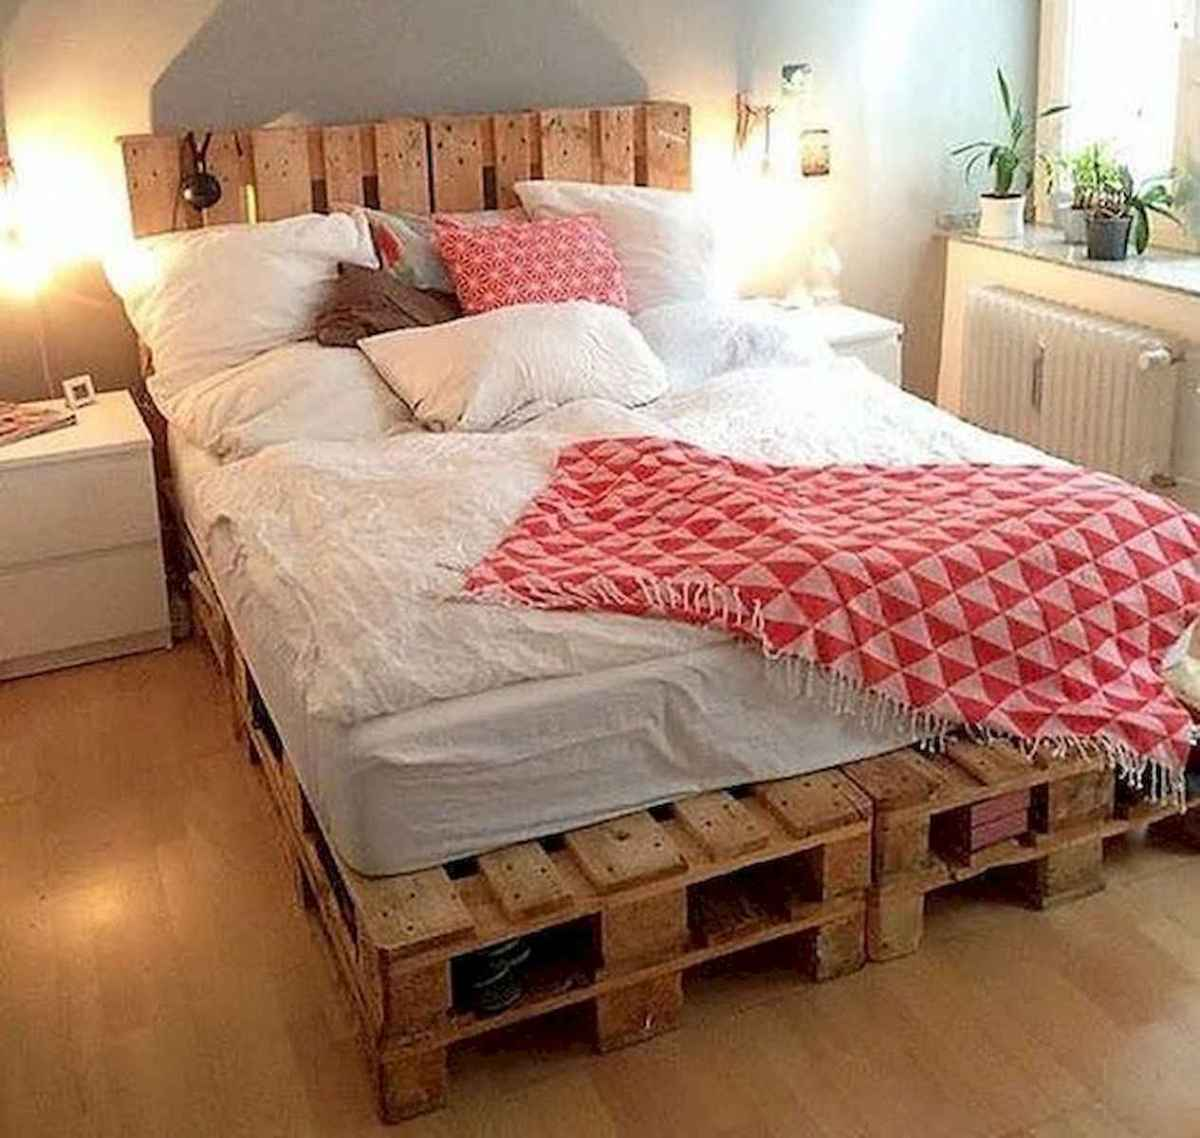 50 Creative Recycled DIY Projects Pallet Beds Design Ideas (13)